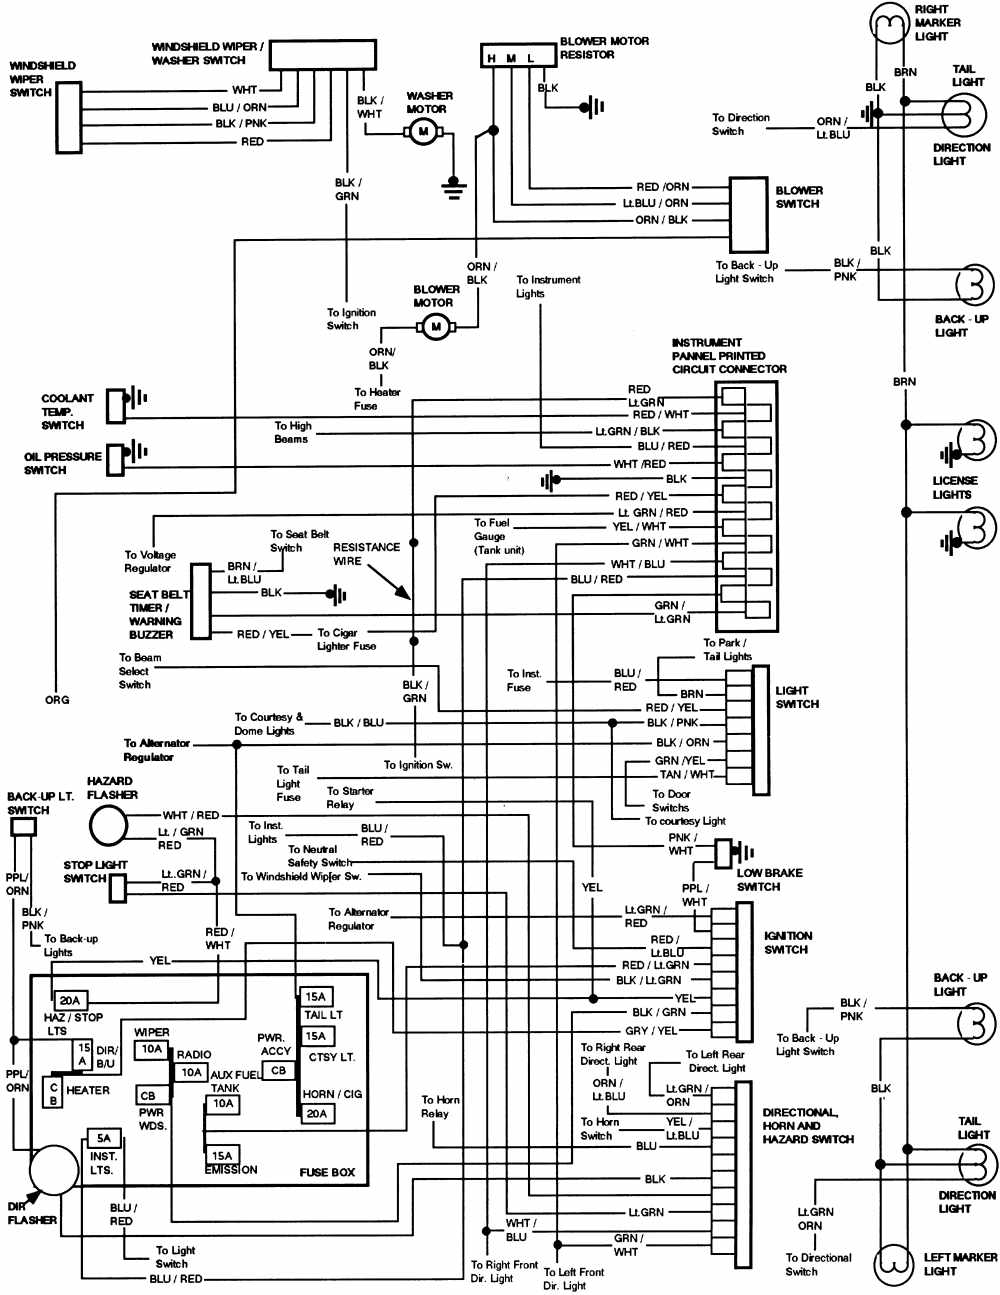 2014 f150 radio wiring harness diagram